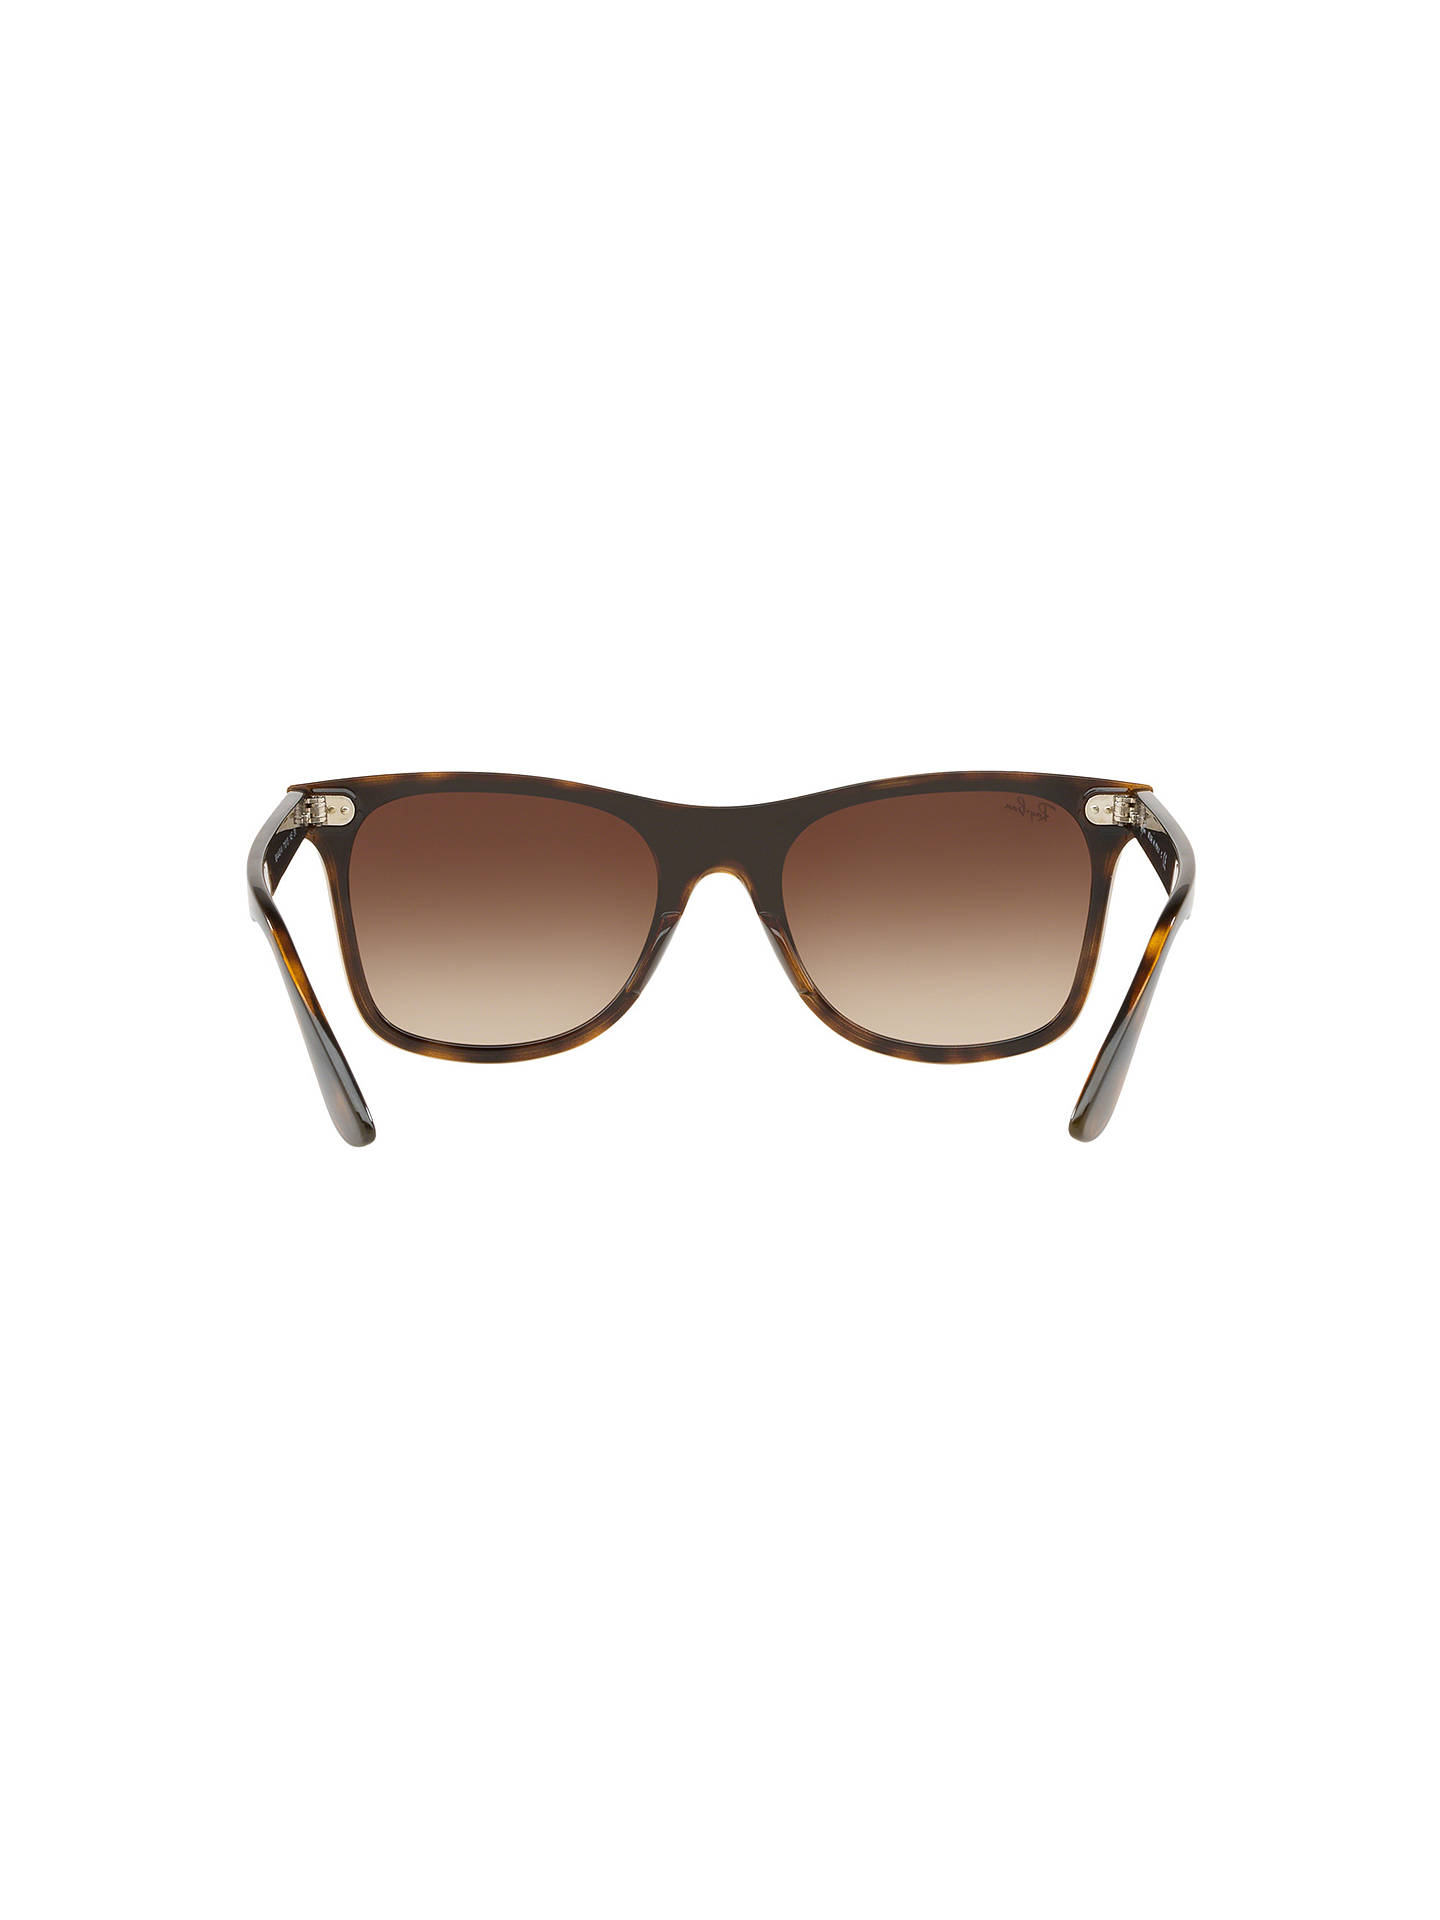 BuyRay-Ban RB4440 Unisex Mirrored Sunglasses, Brown Online at johnlewis.com